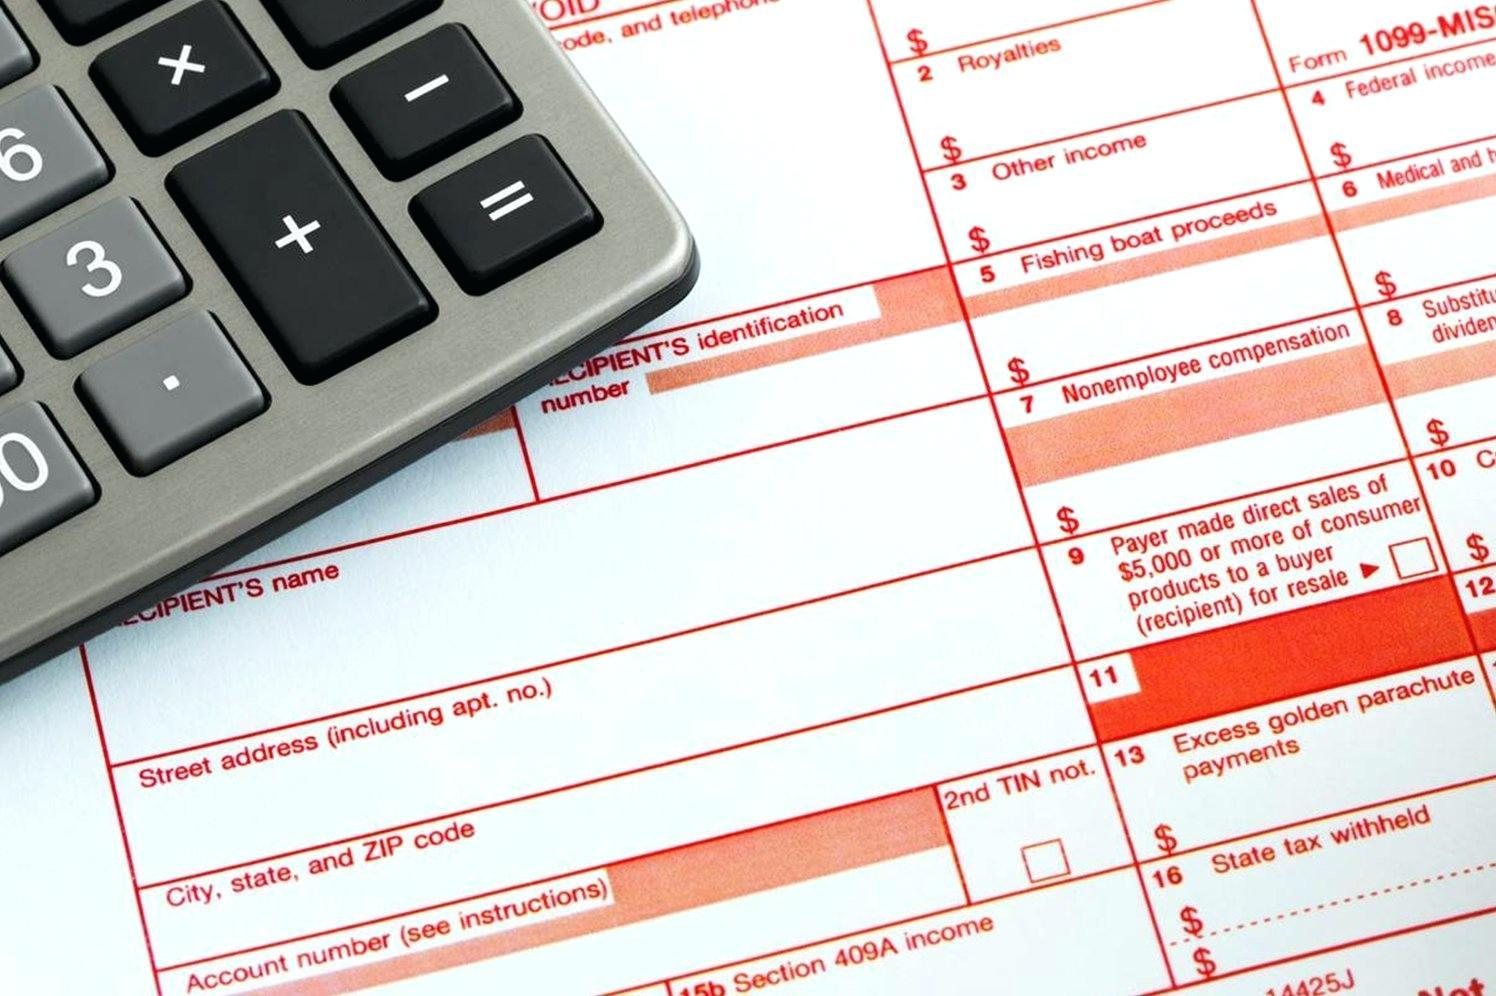 Federal Form 1099 Misc